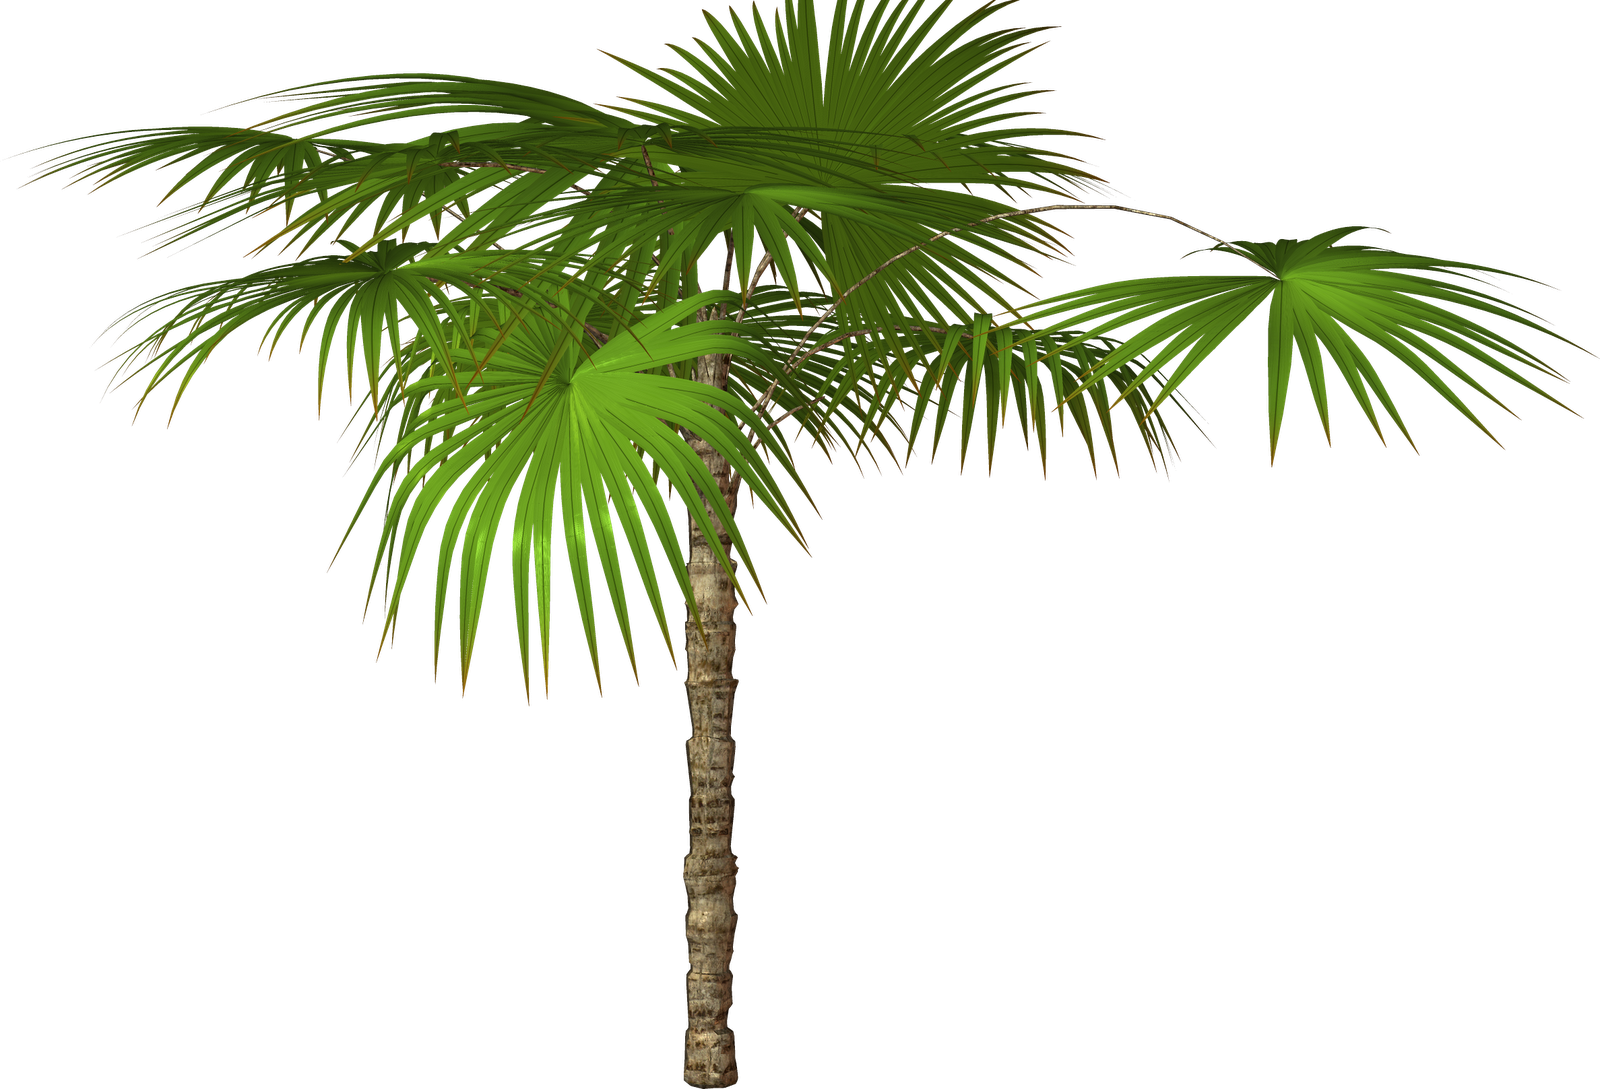 Palm tree transparent png. Clipart trees high resolution